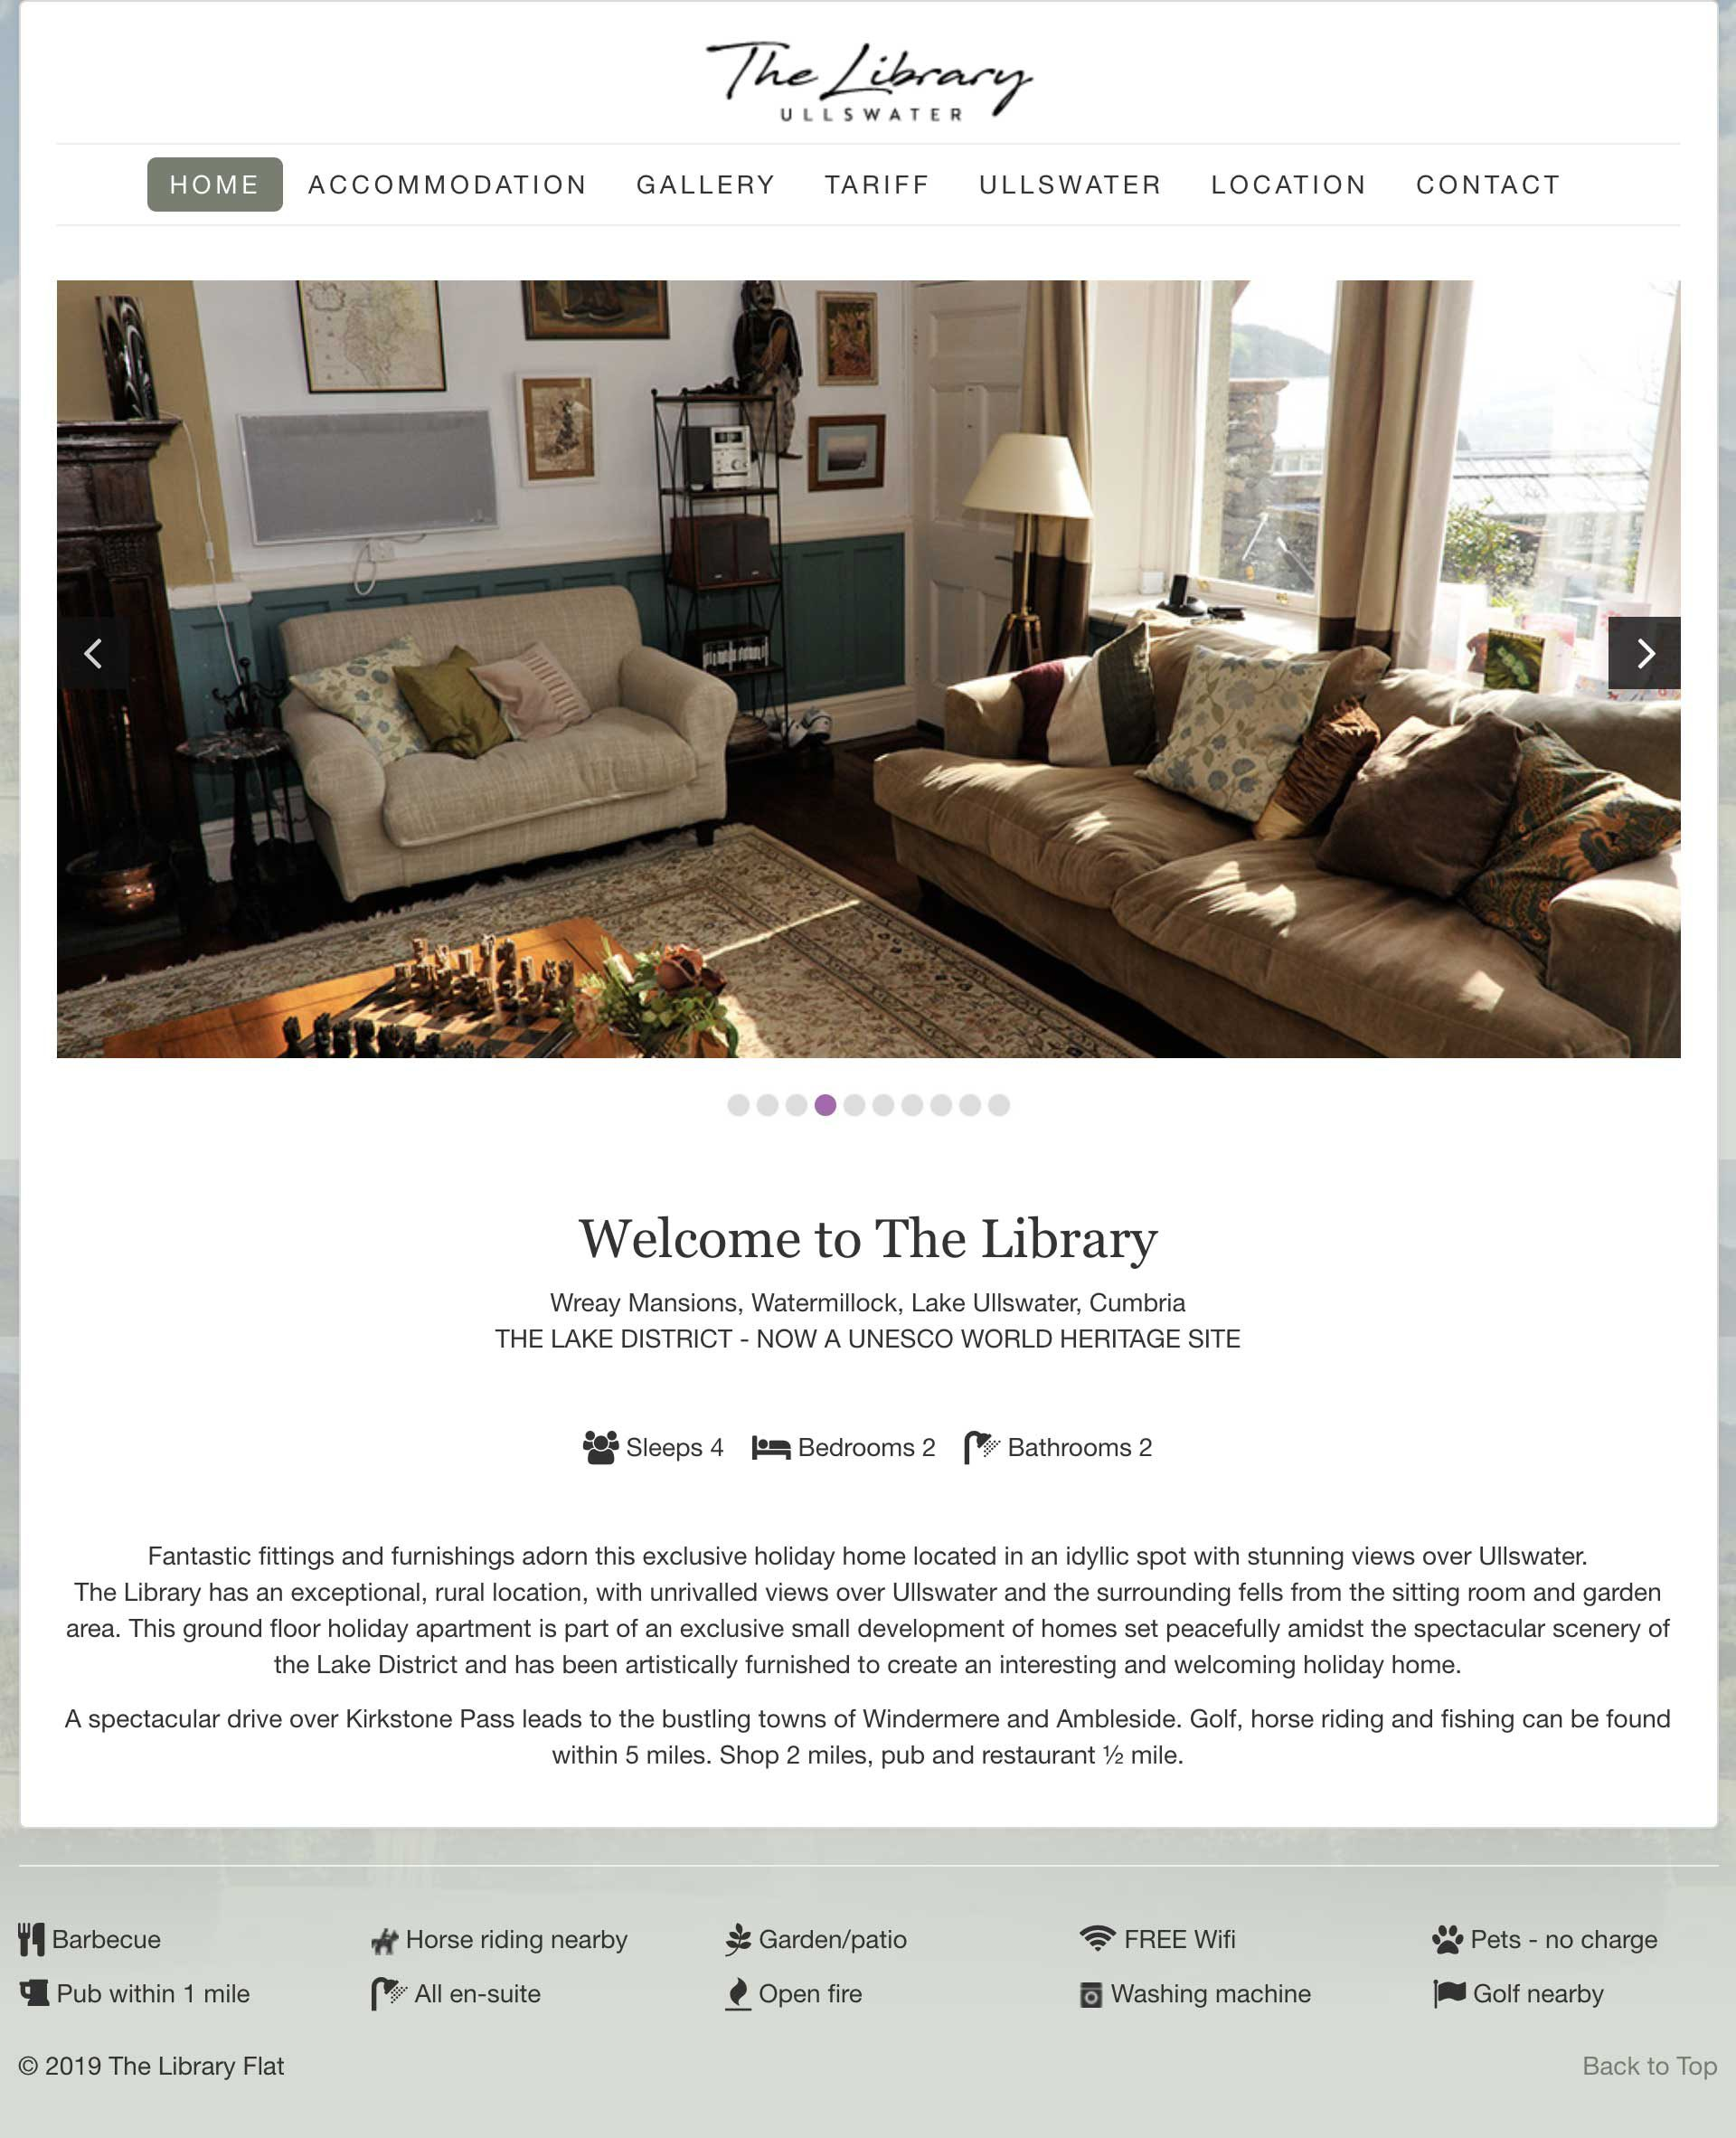 website design - The Library